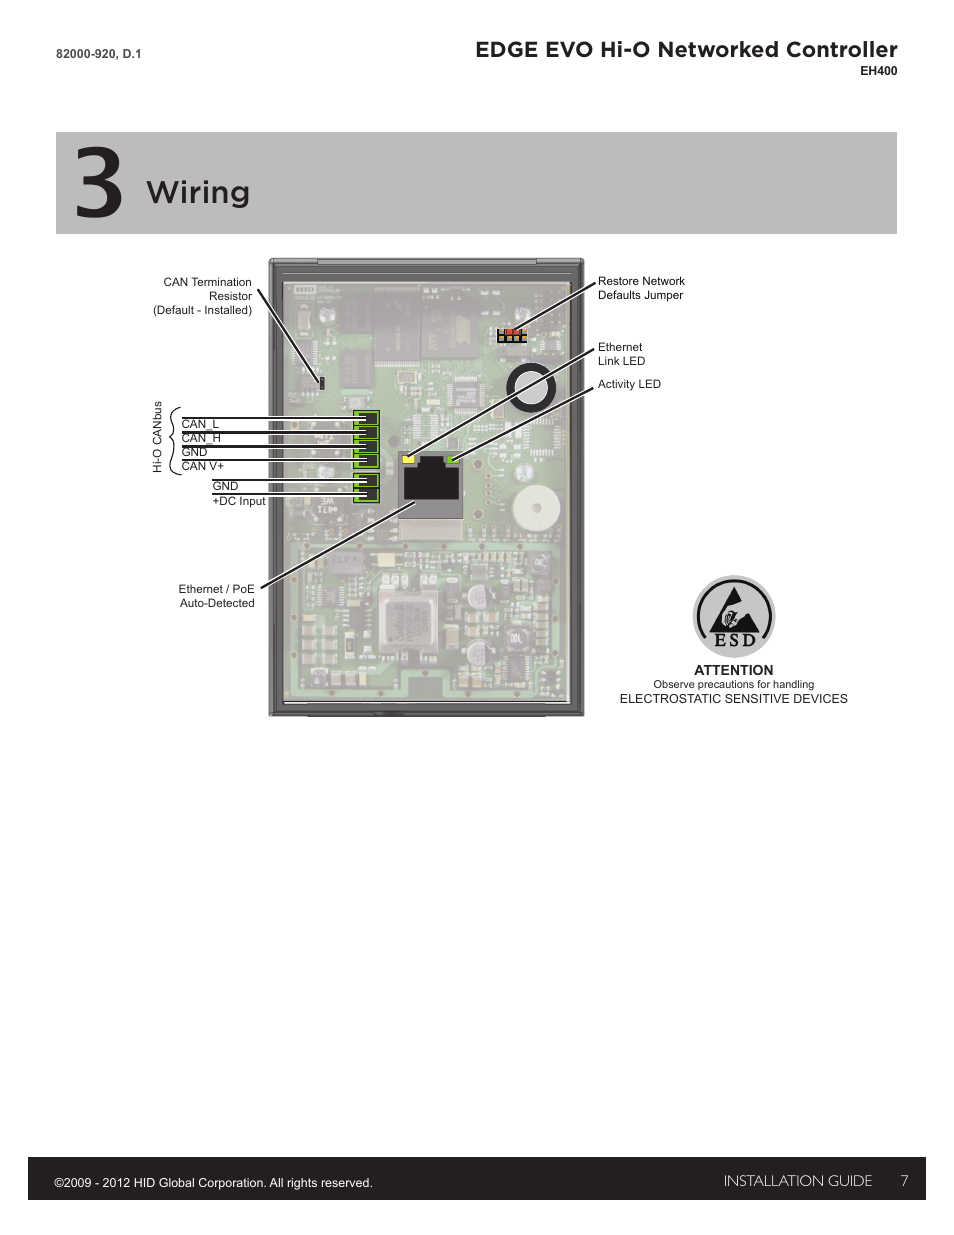 3 wiring wiring edge evo hi o networked controller hid edge 3 wiring wiring edge evo hi o networked controller hid edge evo solo esh400 hi o controller installation guide user manual page 7 12 cheapraybanclubmaster Images